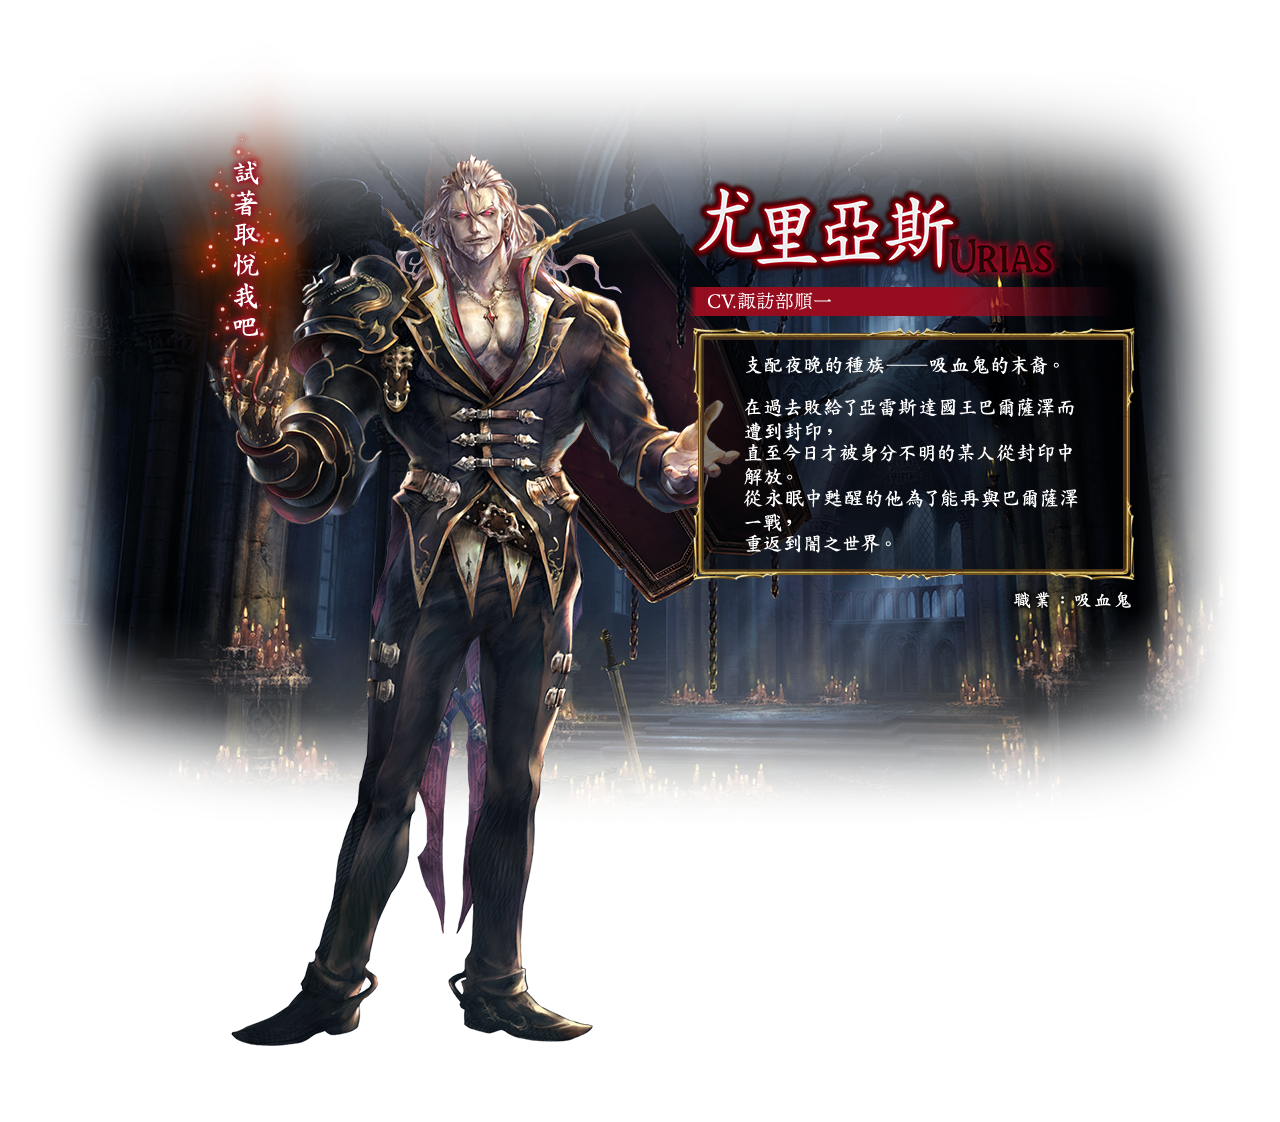 Urias / Class: Bloodcraft / Urias, the last of the vampires, has been awakened after centuries. He yearns for another fight with his bitter rival, King Balthazar.